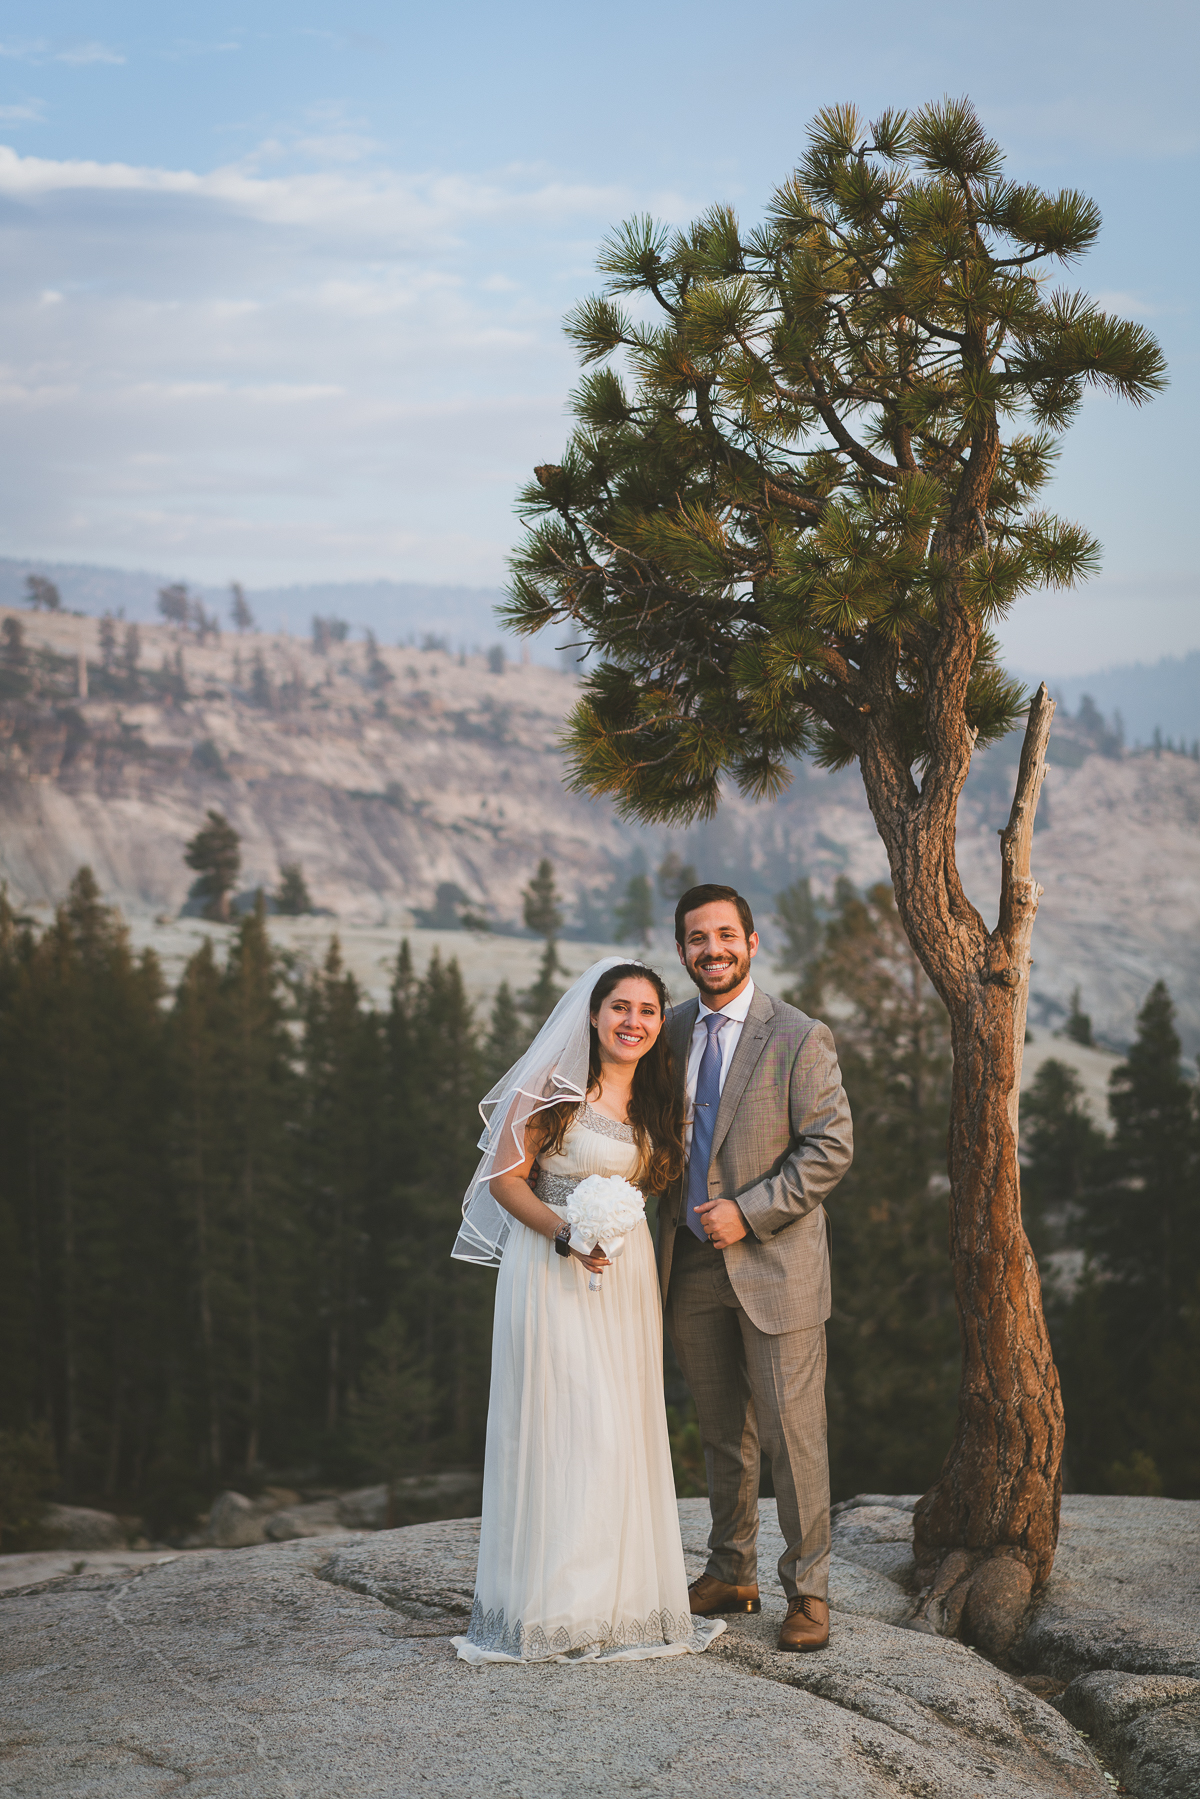 Bride and groom with Yosemite tree